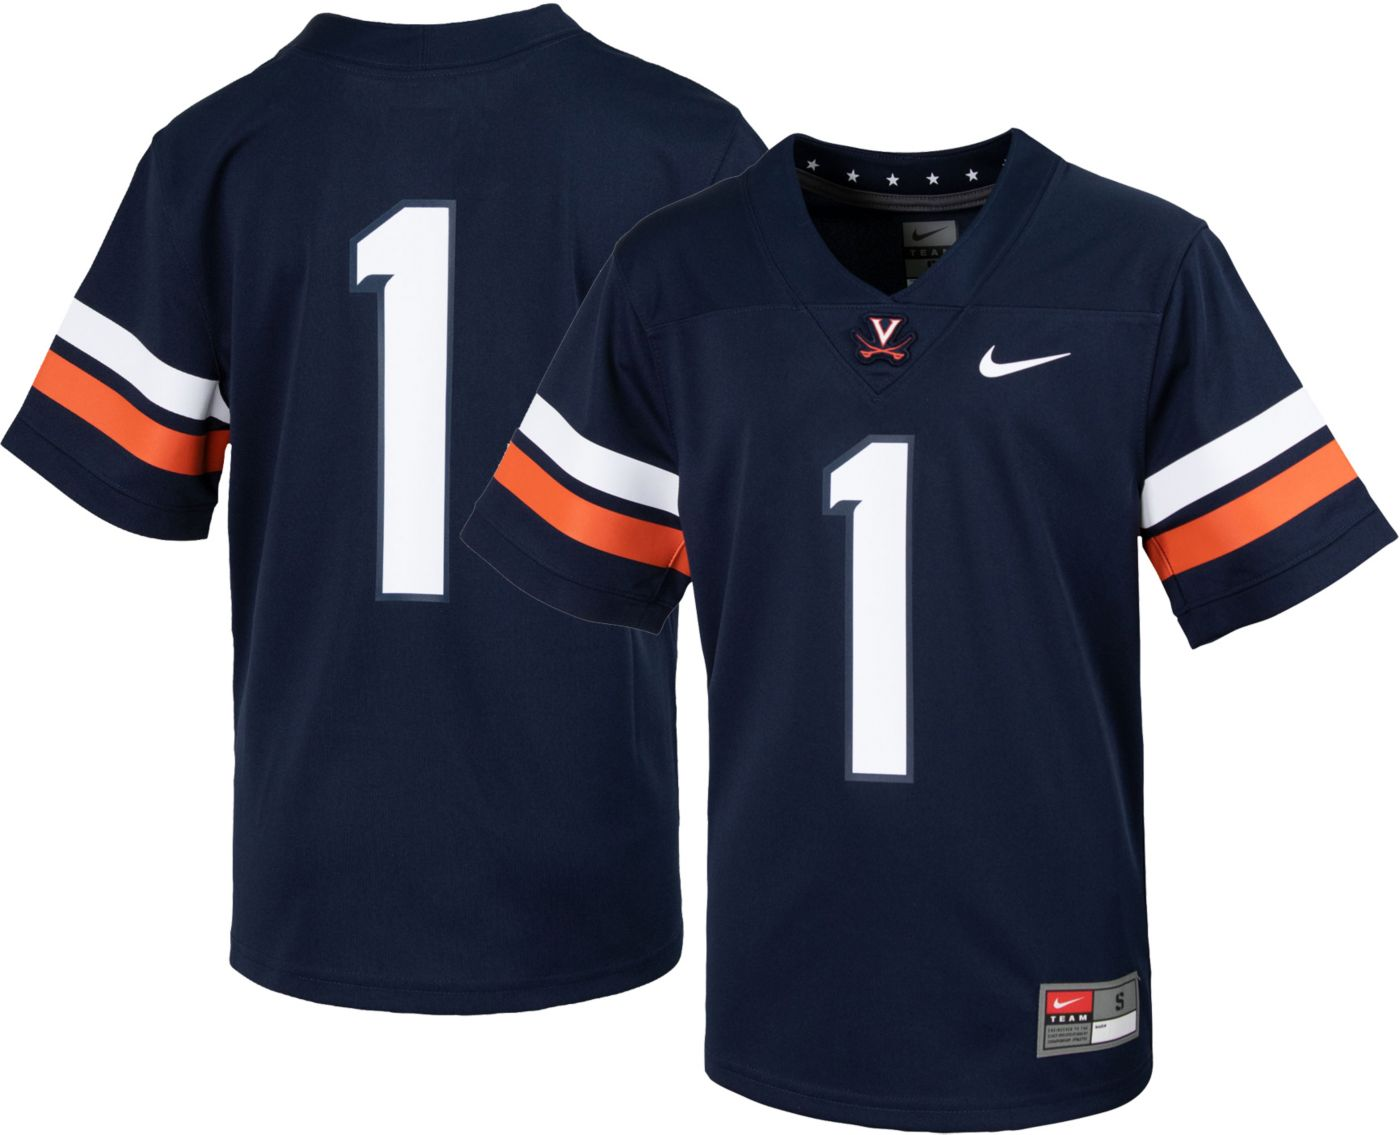 Nike Youth Virginia Cavaliers #1 Blue Replica Football Jersey